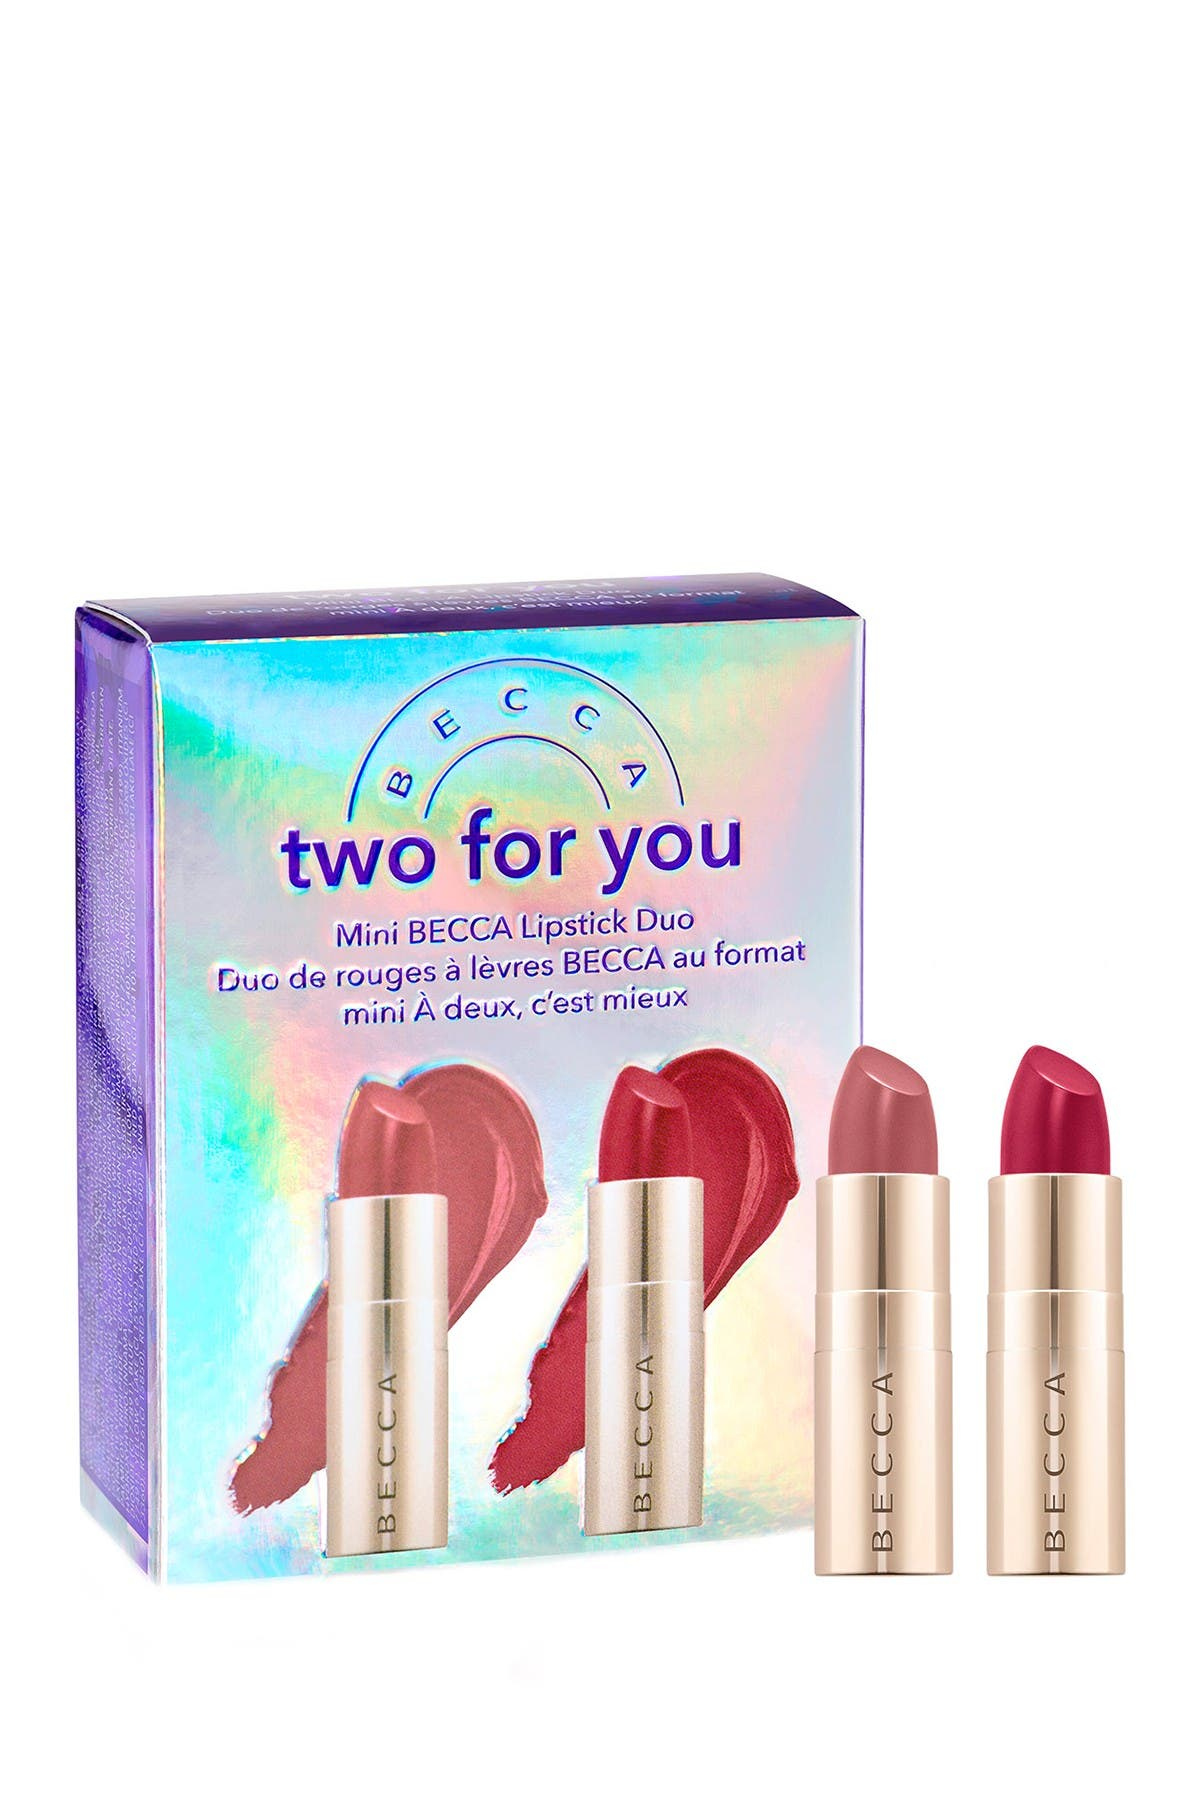 Image of BECCA Cosmetics Two For You Mini Lipstick Duo